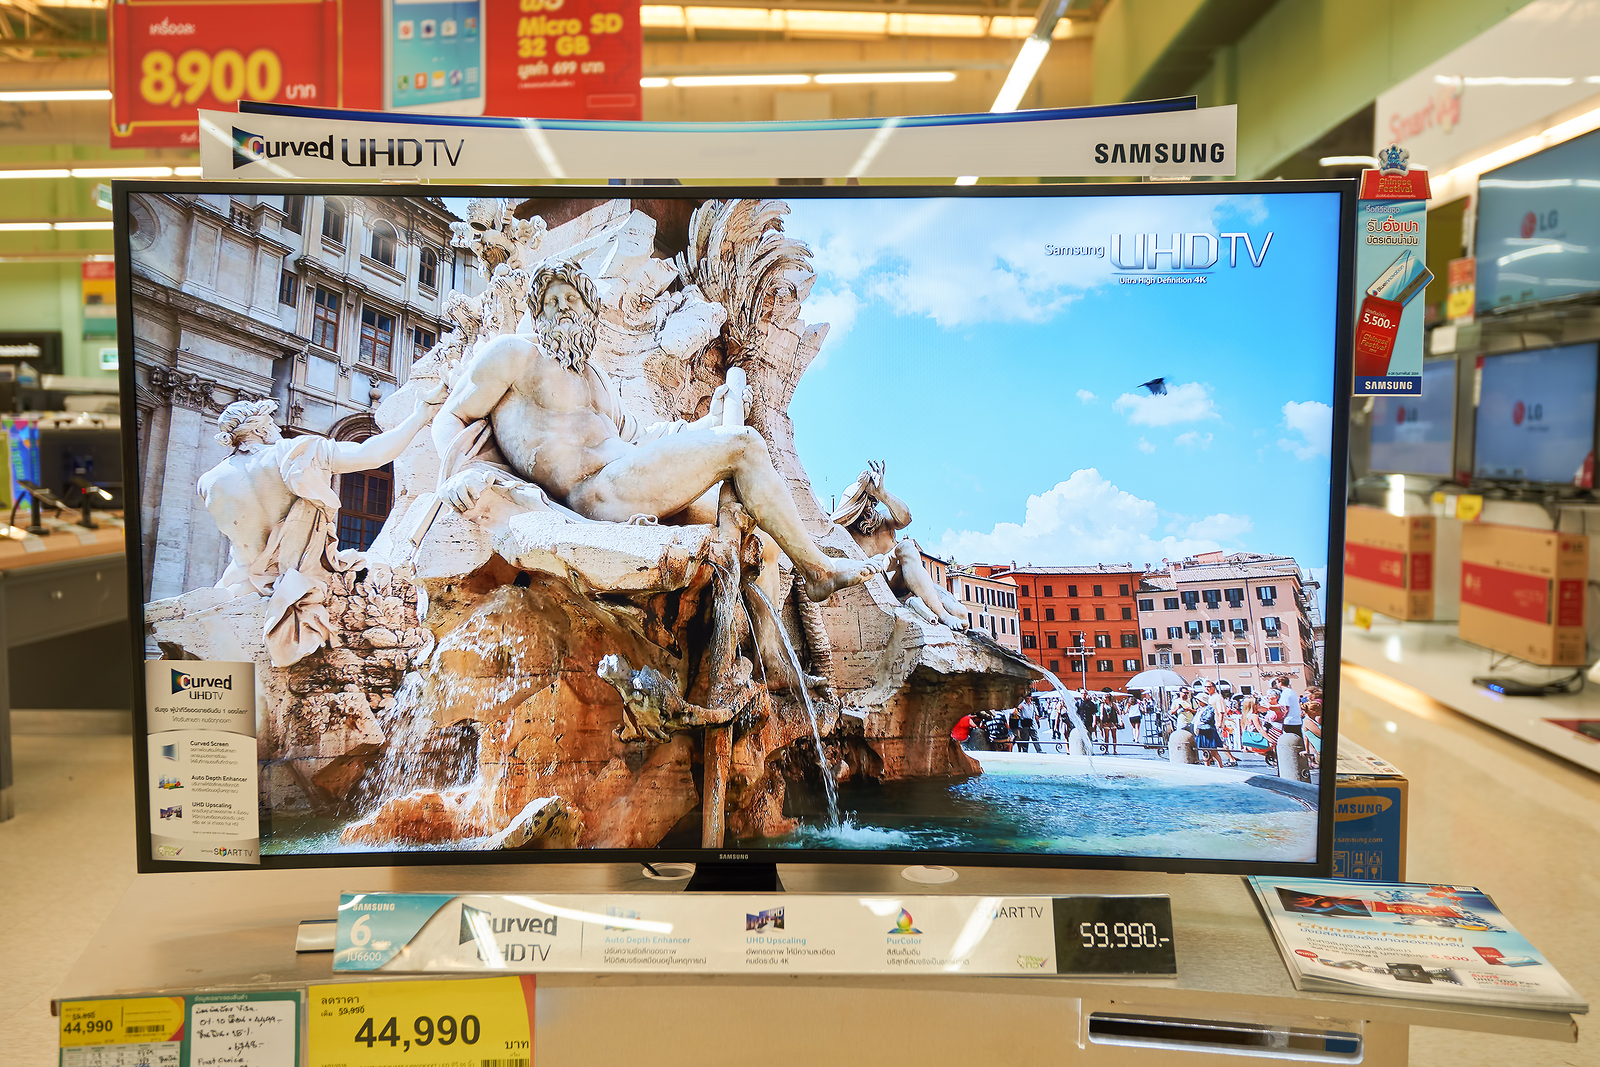 Who has best black friday deals on tvs